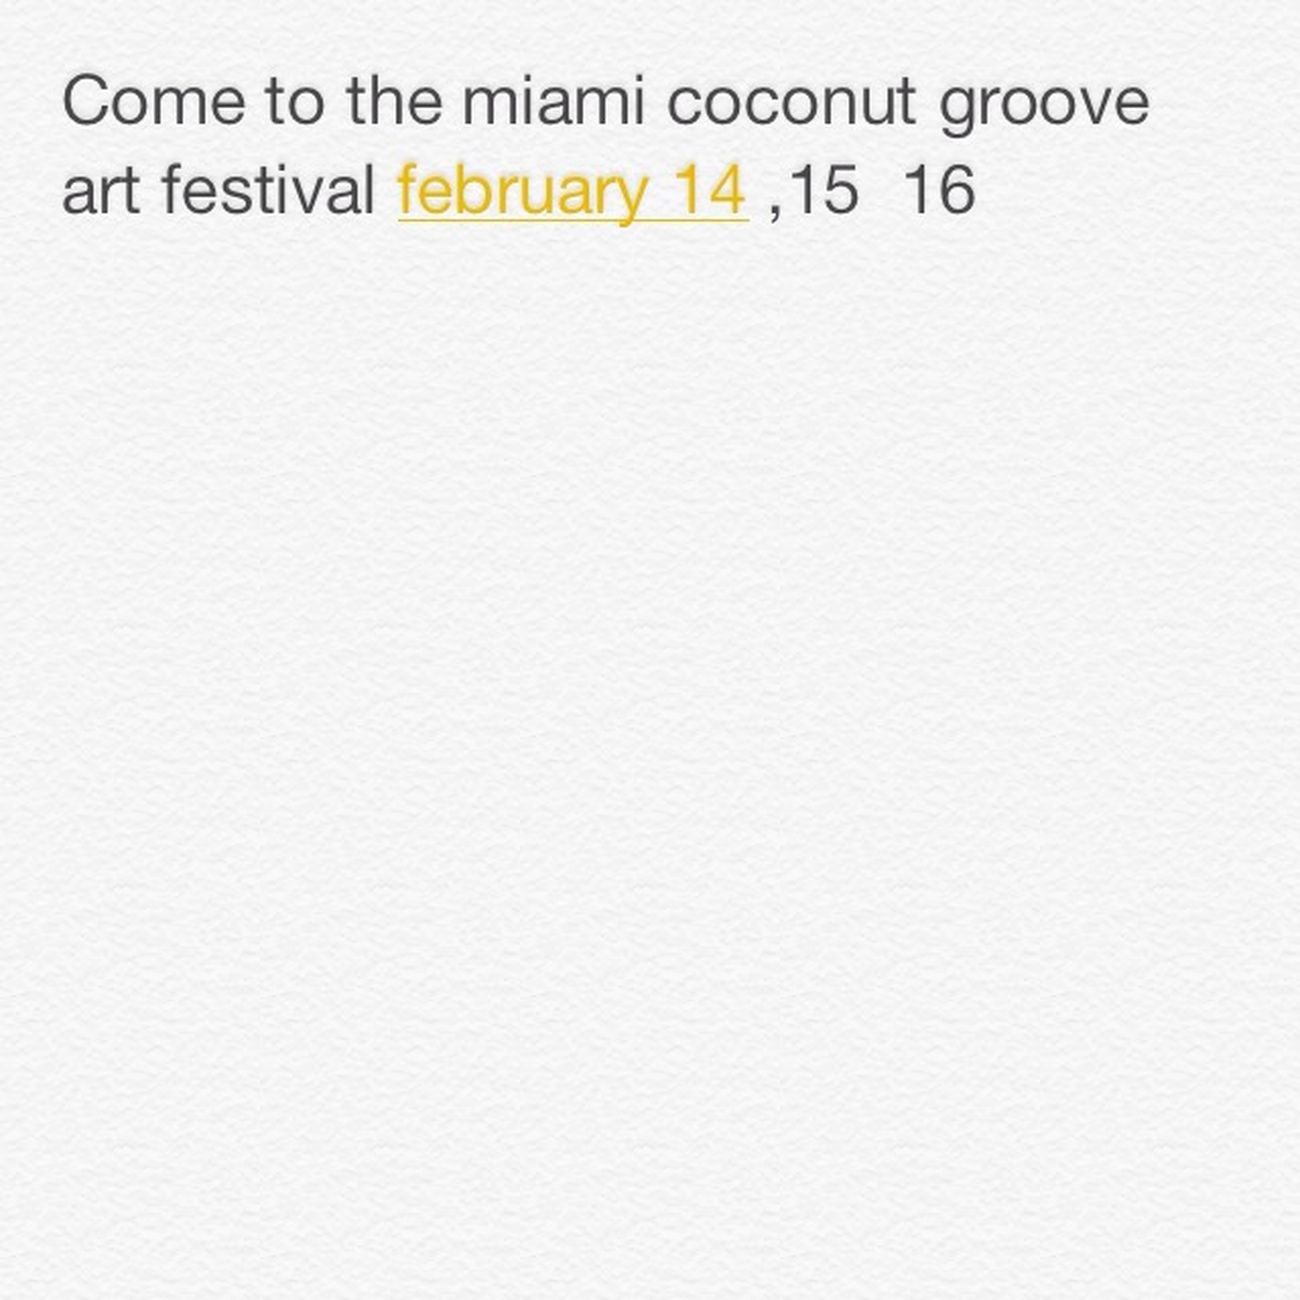 Festival Miami CoconutGrove Come